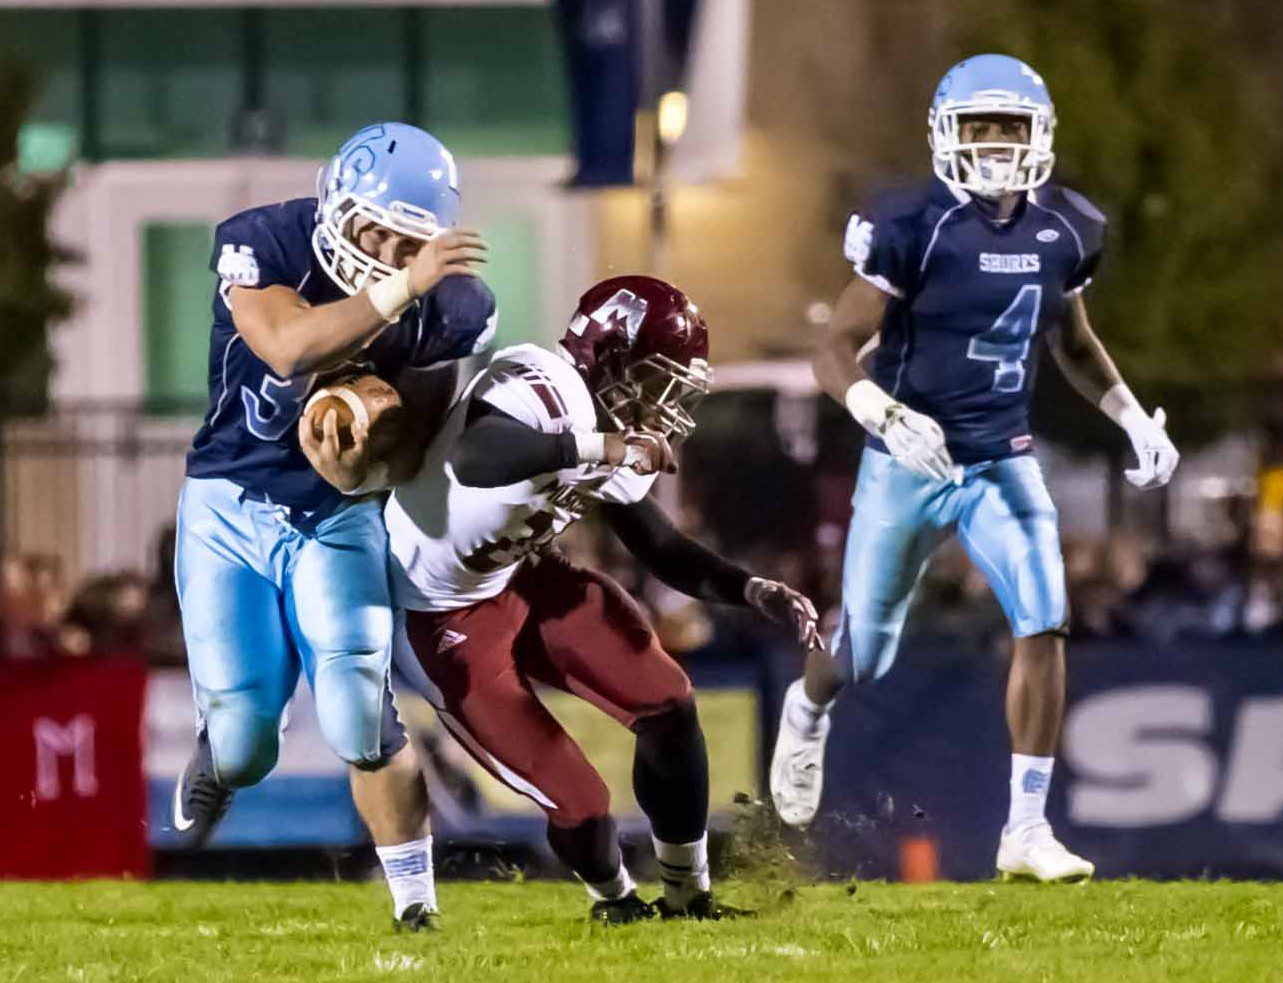 Mona Shores withstands furious Muskegon comeback, holds on for a stunning 21-18 victory in O-K Black showdown